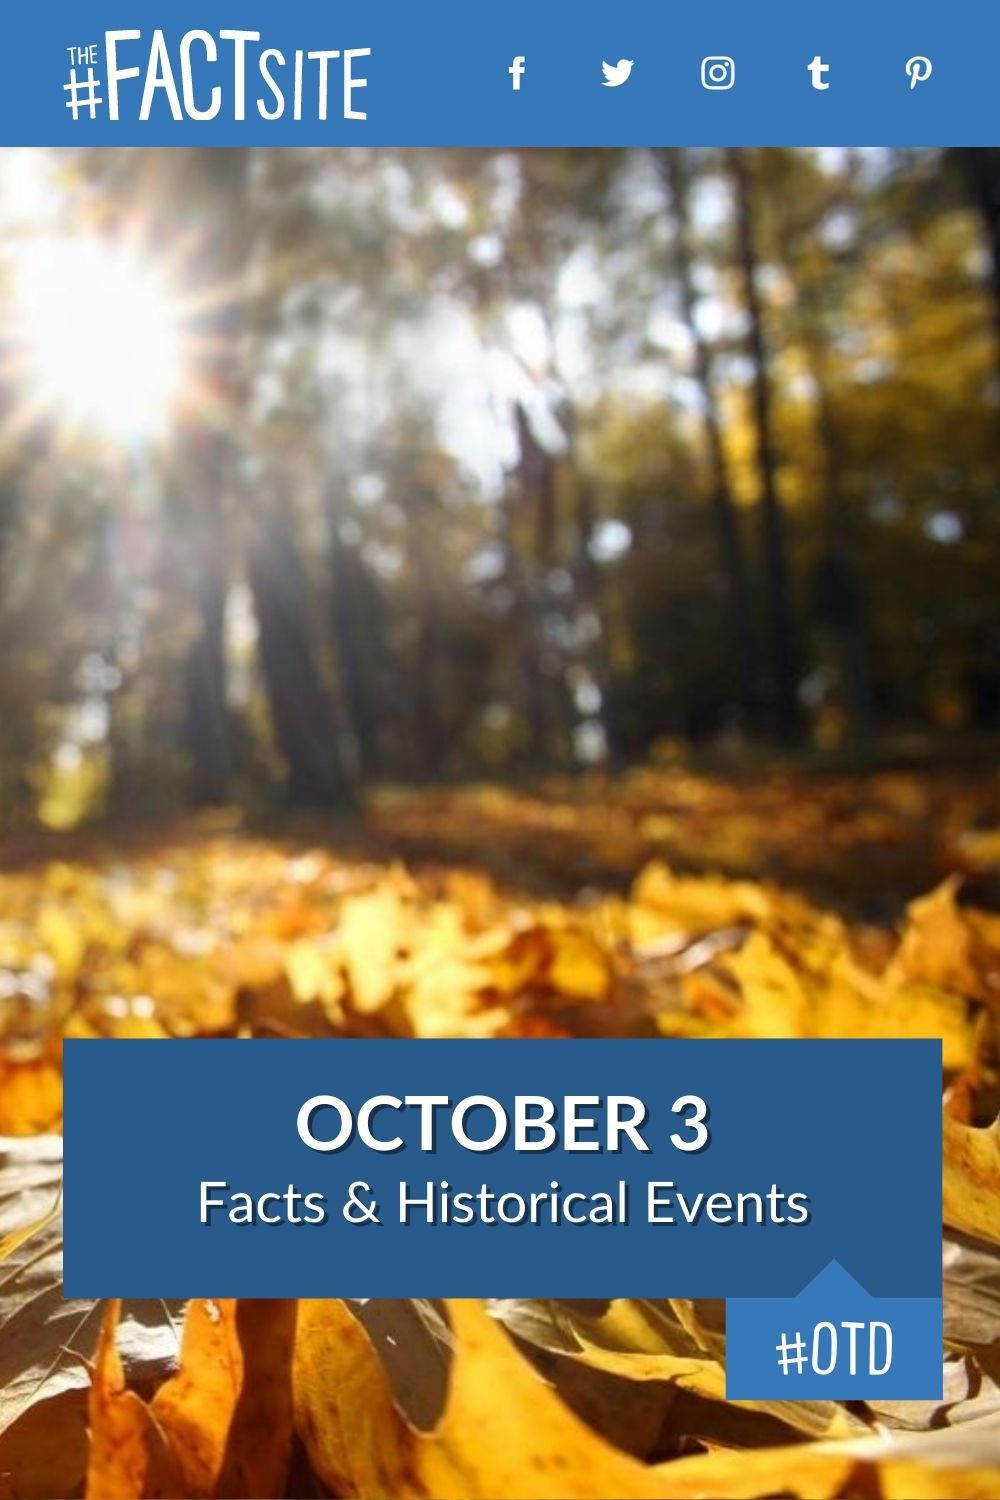 Facts & Historic Events That Happened on October 3